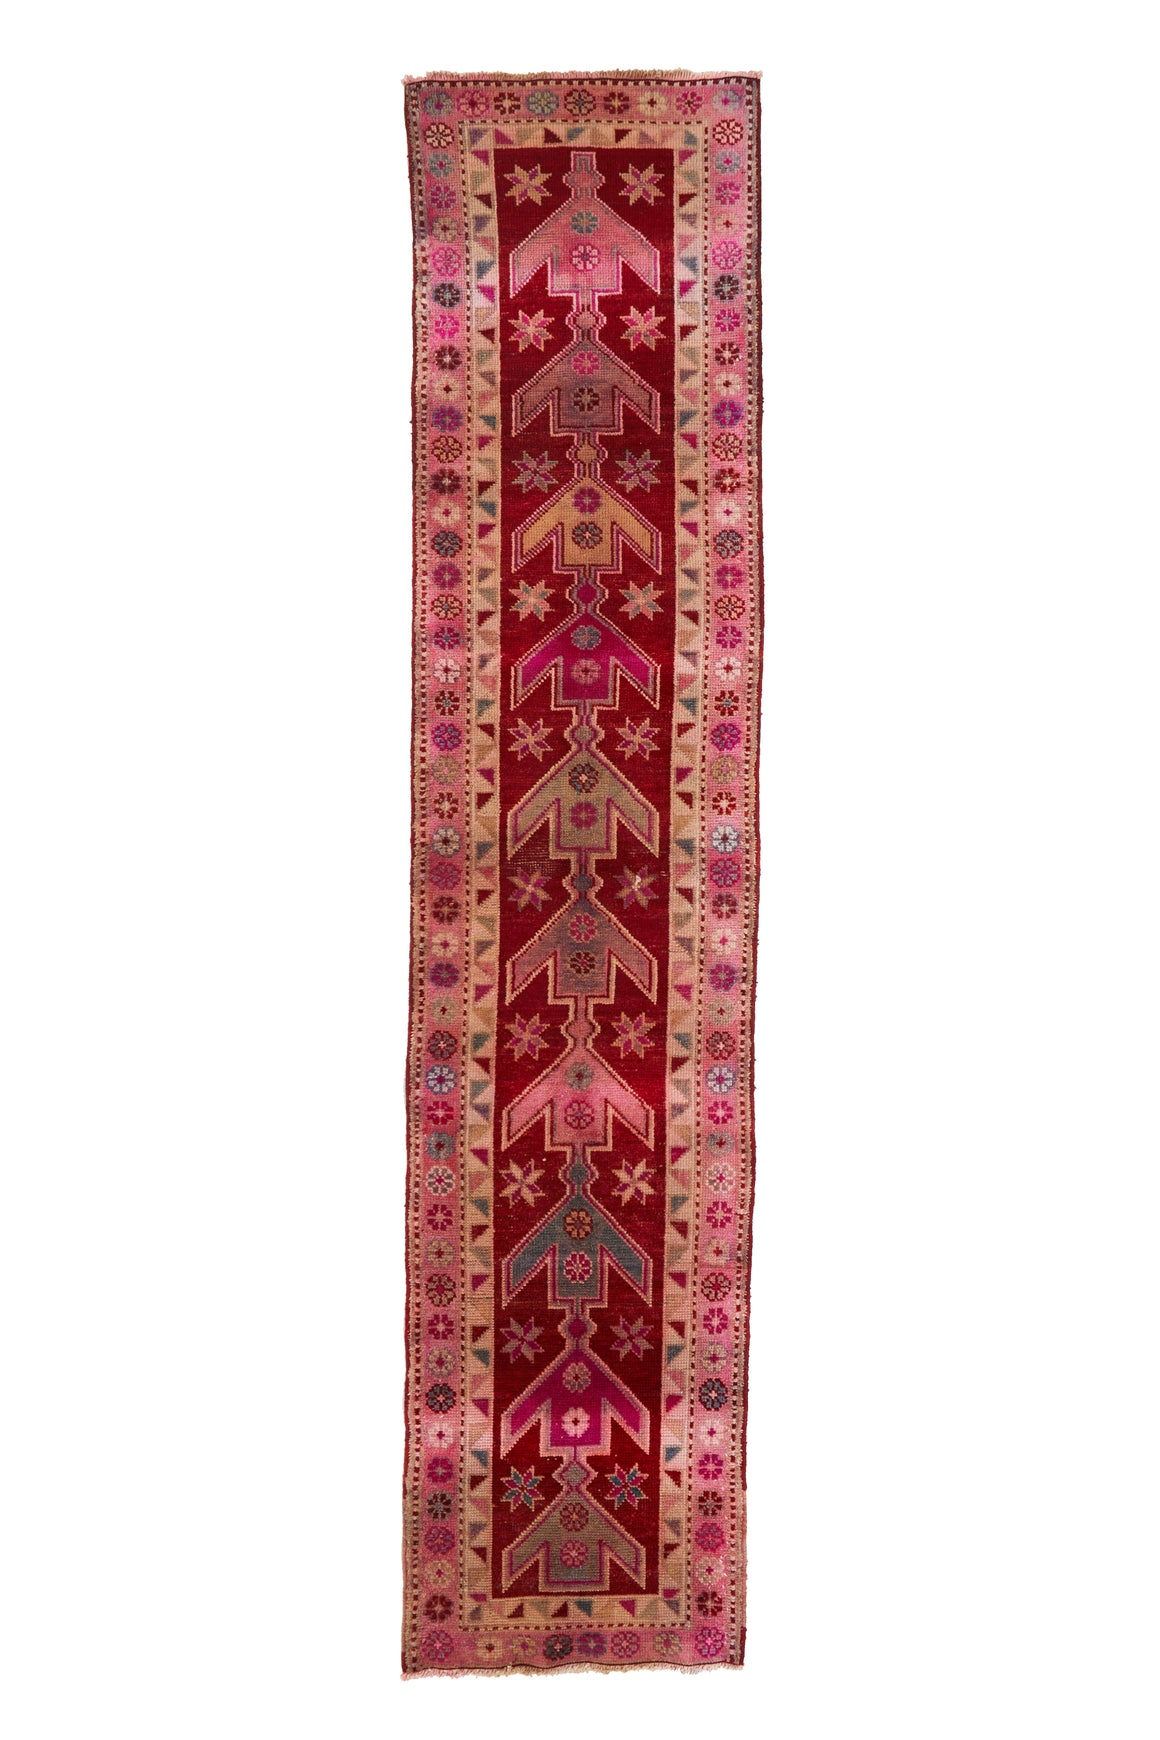 "'Violette' Turkish Runner Rug - 2'9"" x 12'5''"